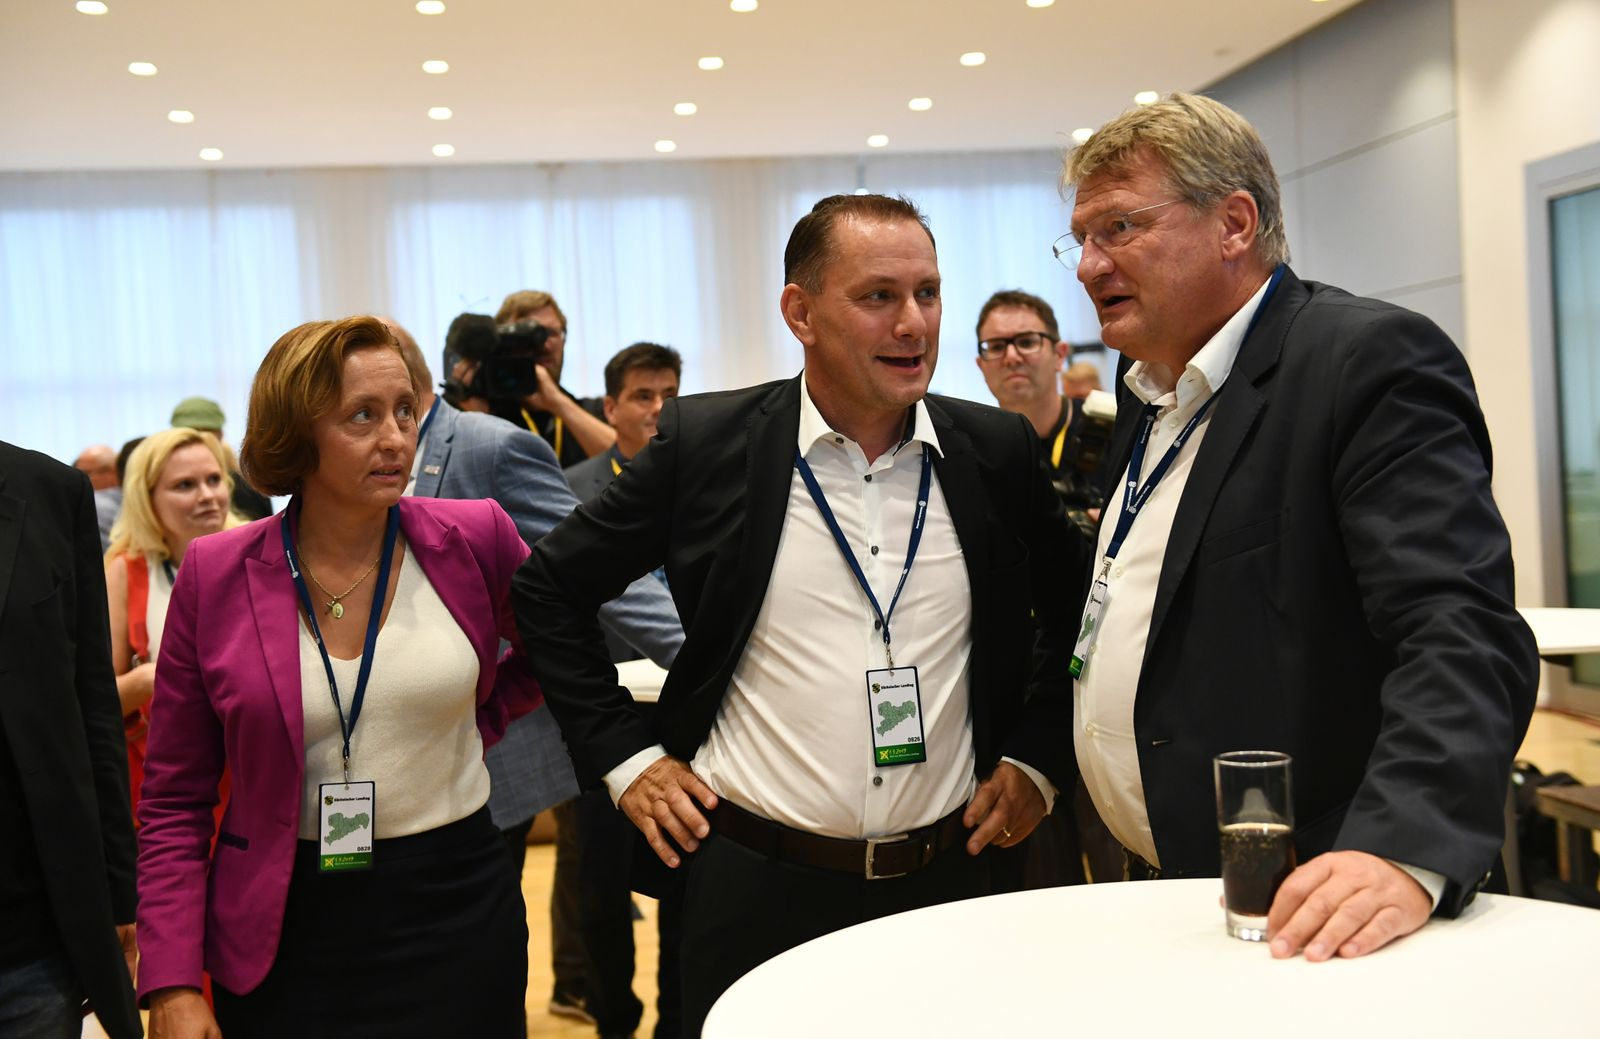 Regional elections in Saxony 2019, Dresden, Germany - 01 Sep 2019